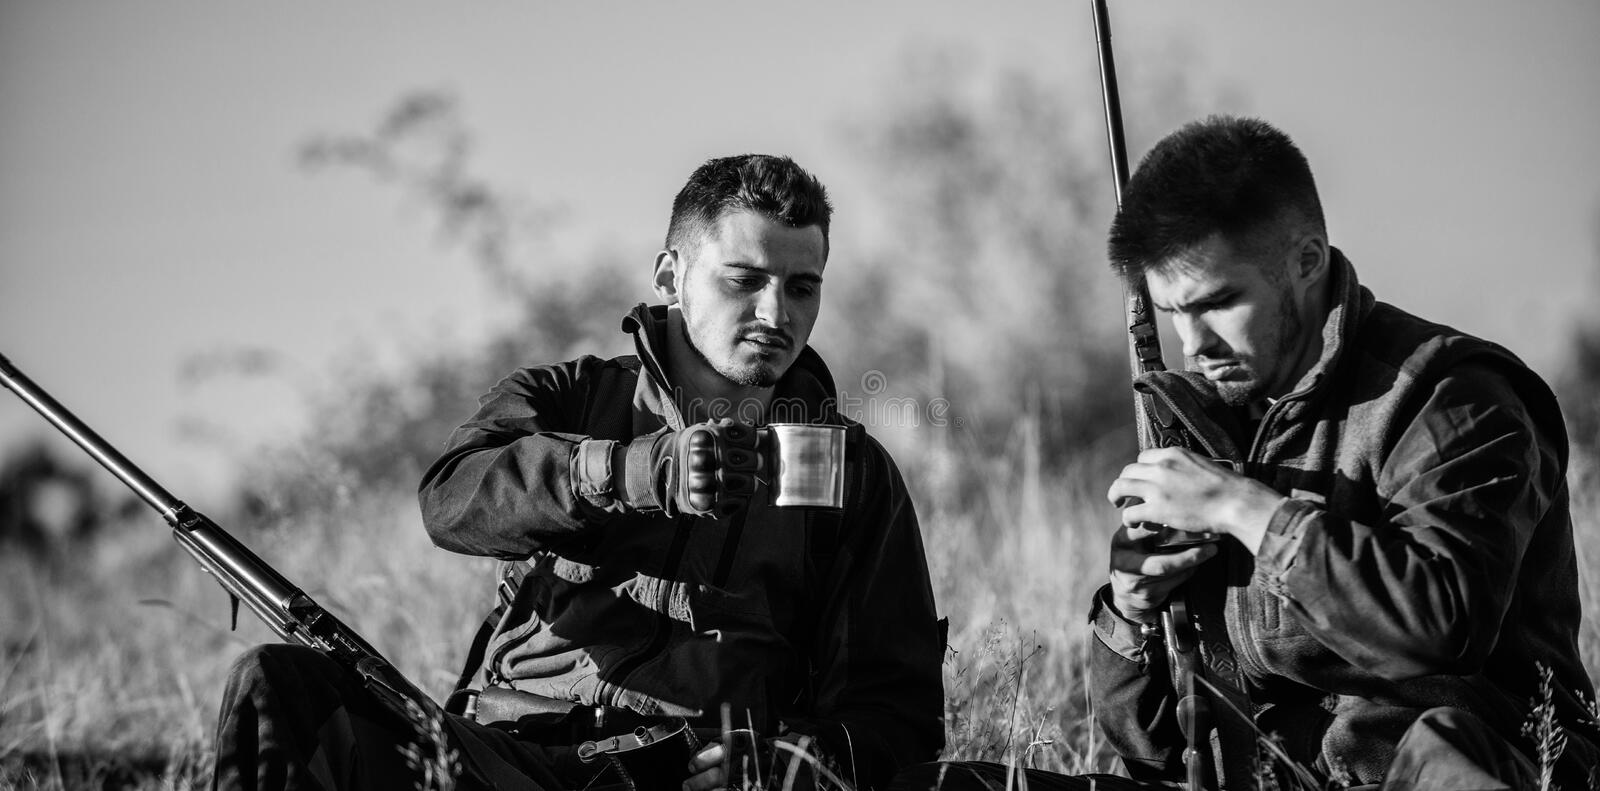 Hunters with rifles relaxing in nature environment. Hunters friends enjoy leisure. Hunting with friends hobby leisure royalty free stock photo